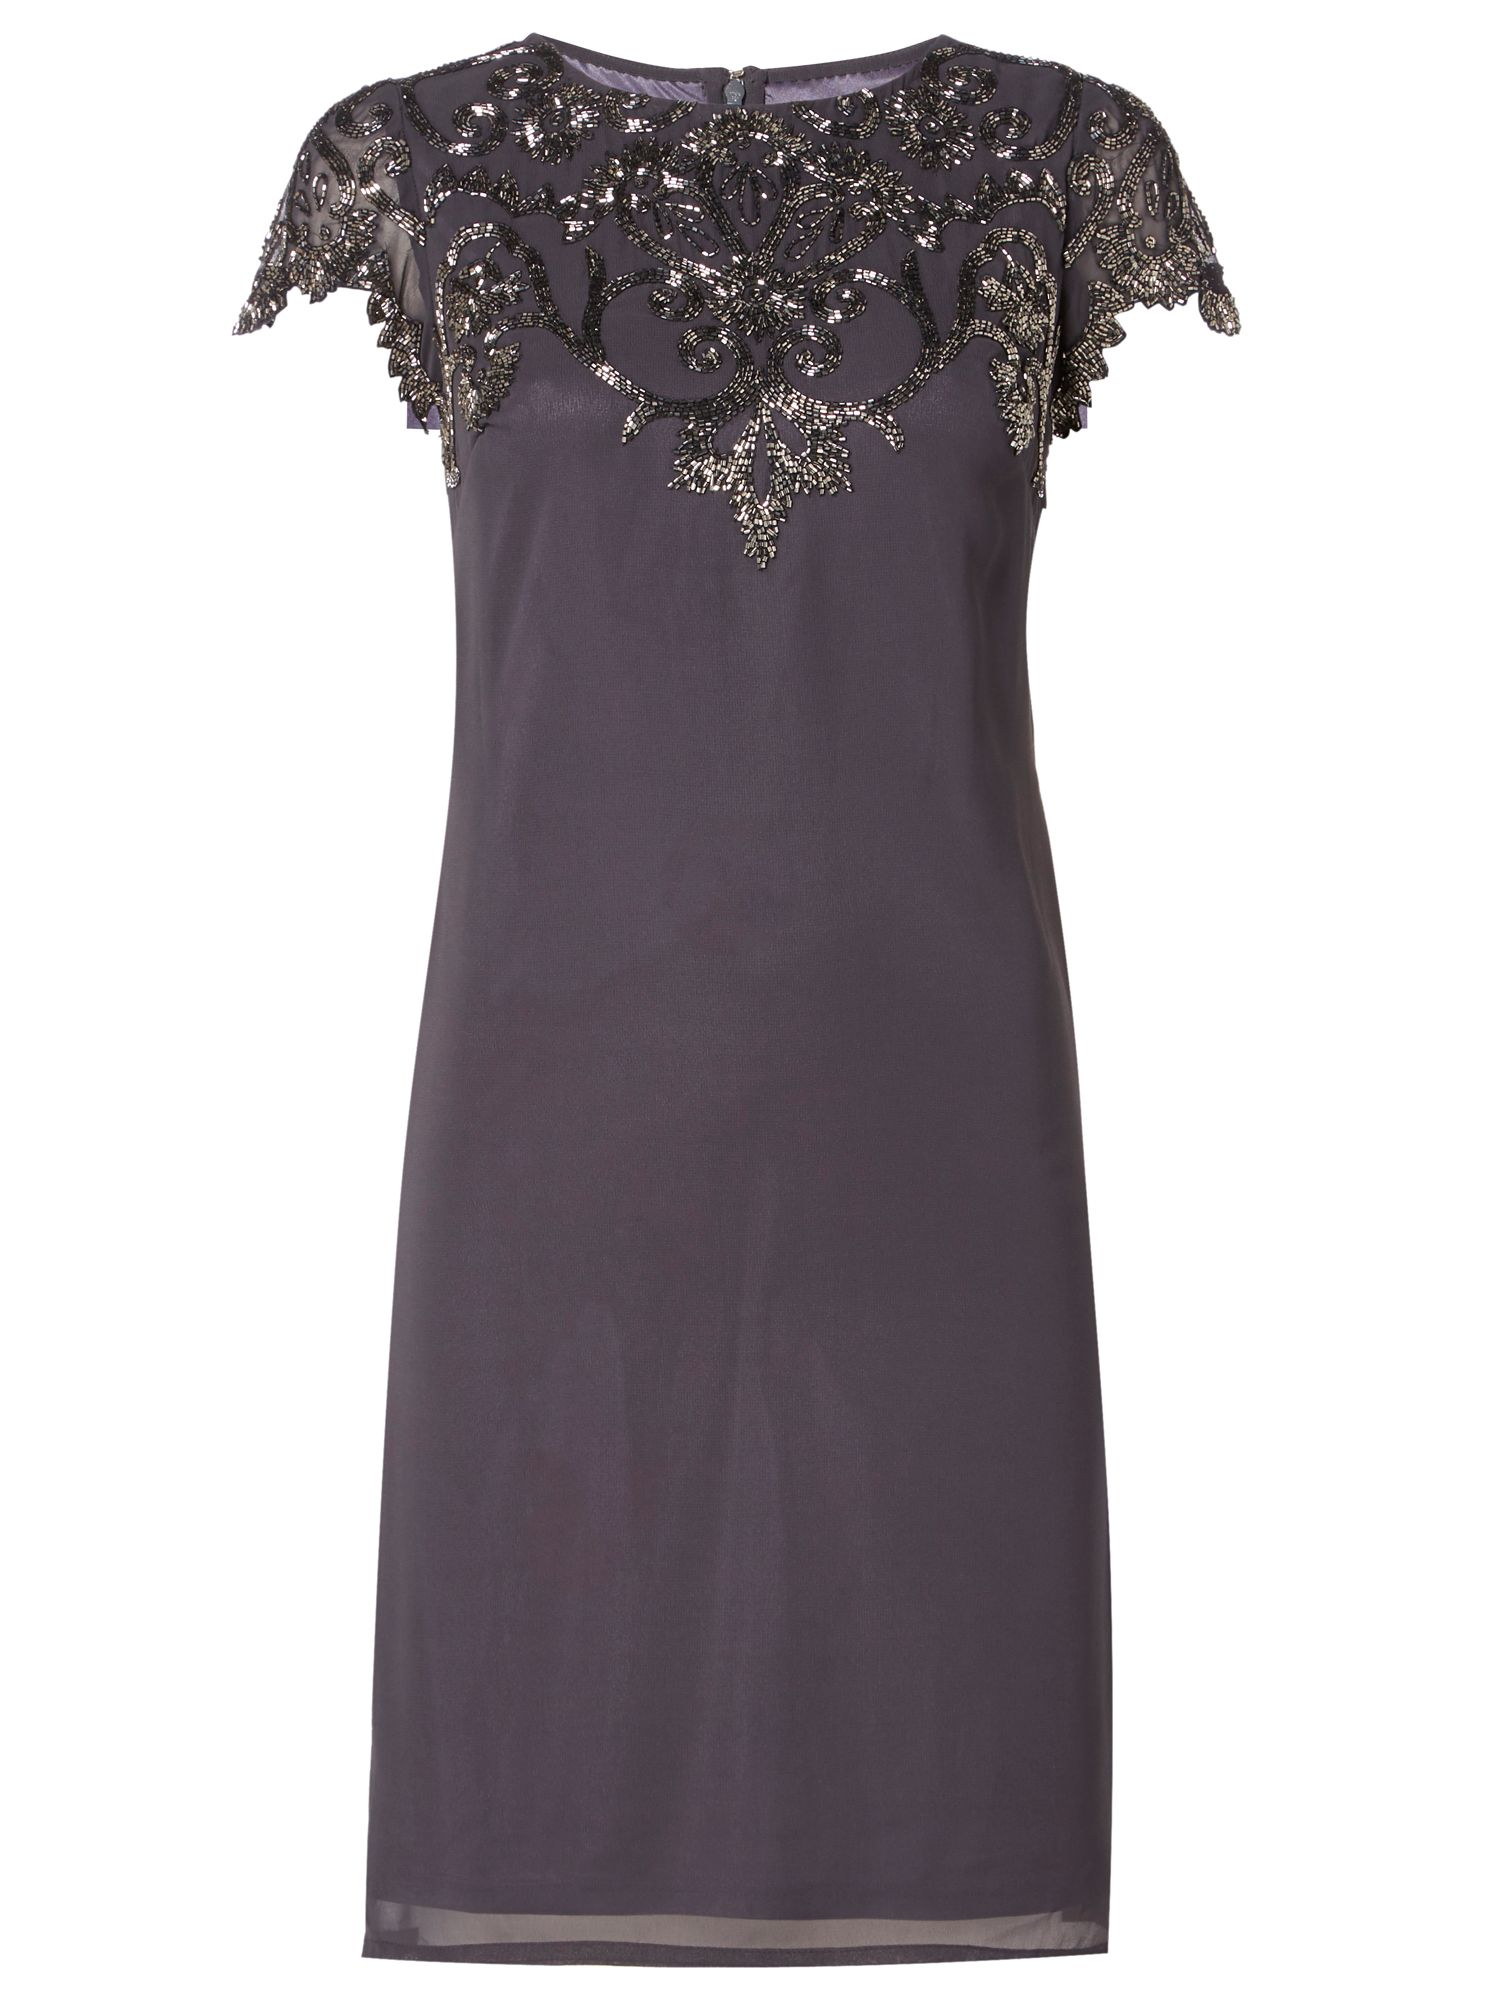 RAISHMA Charcoal Embellished Dress, Charcoal